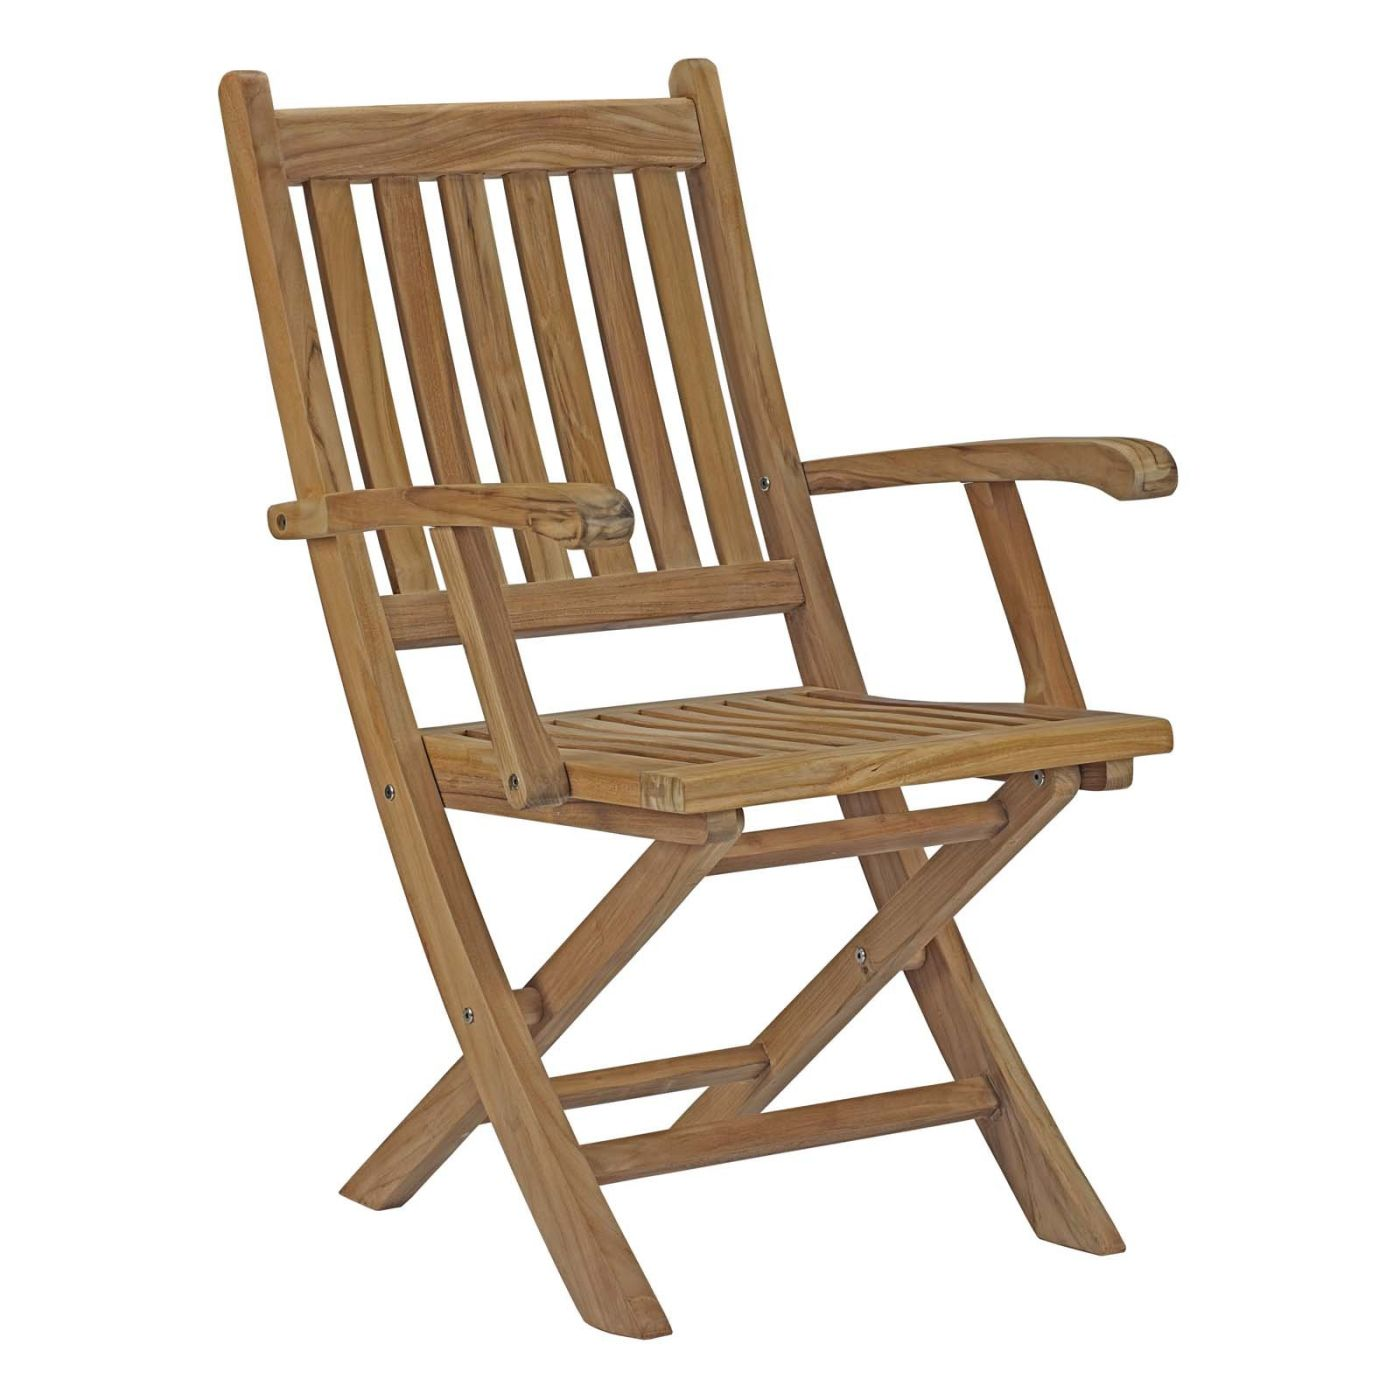 Modway Marina Outdoor Patio Teak Folding Chair EEI 2703 NAT ly